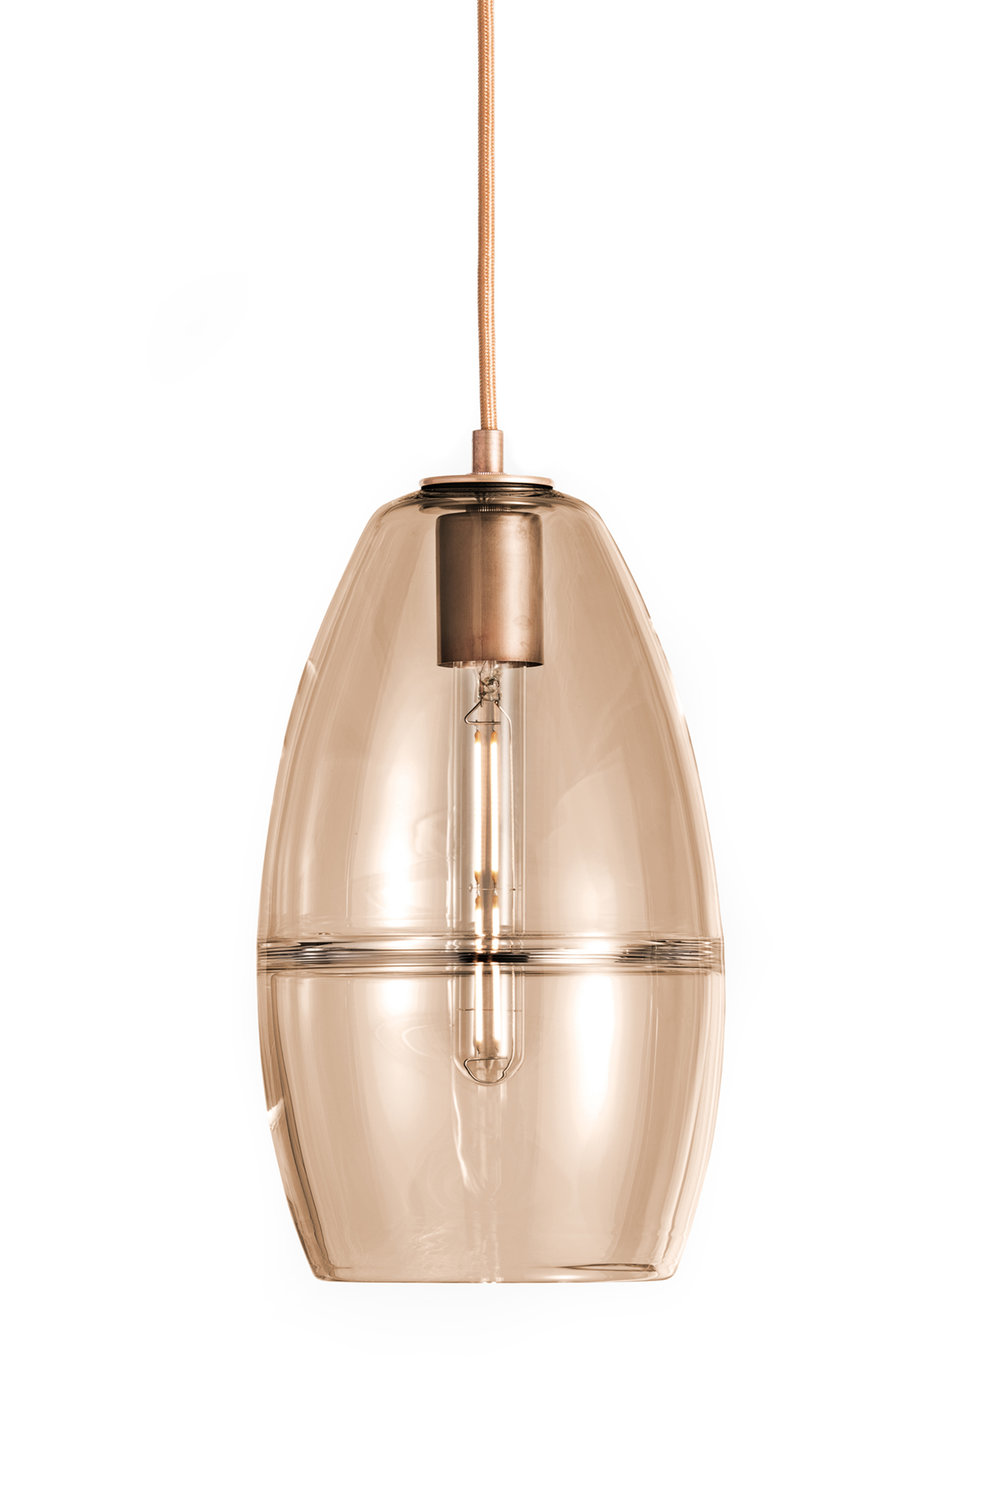 Modern Office Lighting Fixtures For The Workplace